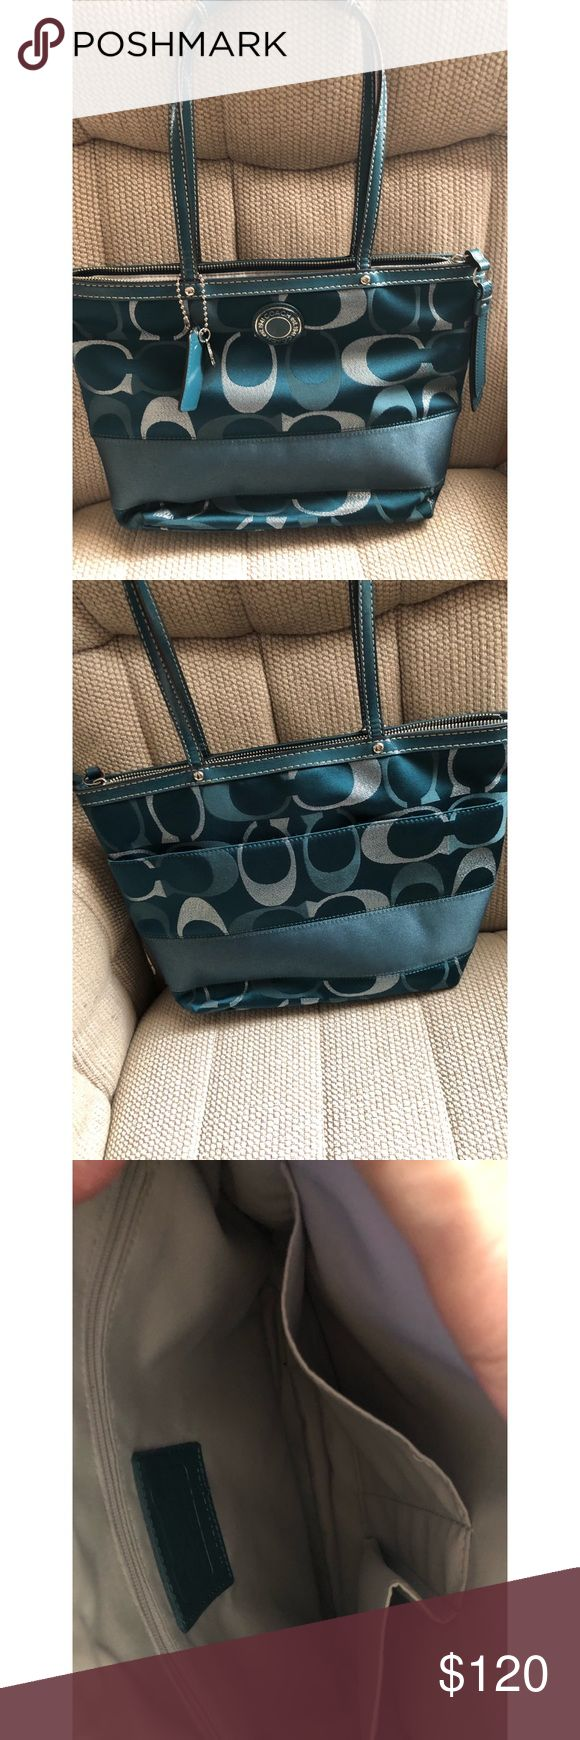 "Coach Signature Medium tote COACH signature stripe 3 colour signature metallic Tote tote bag F20429 SV/U8 teal multi. barely  used like new13"" by 8"" Coach Bags Totes"